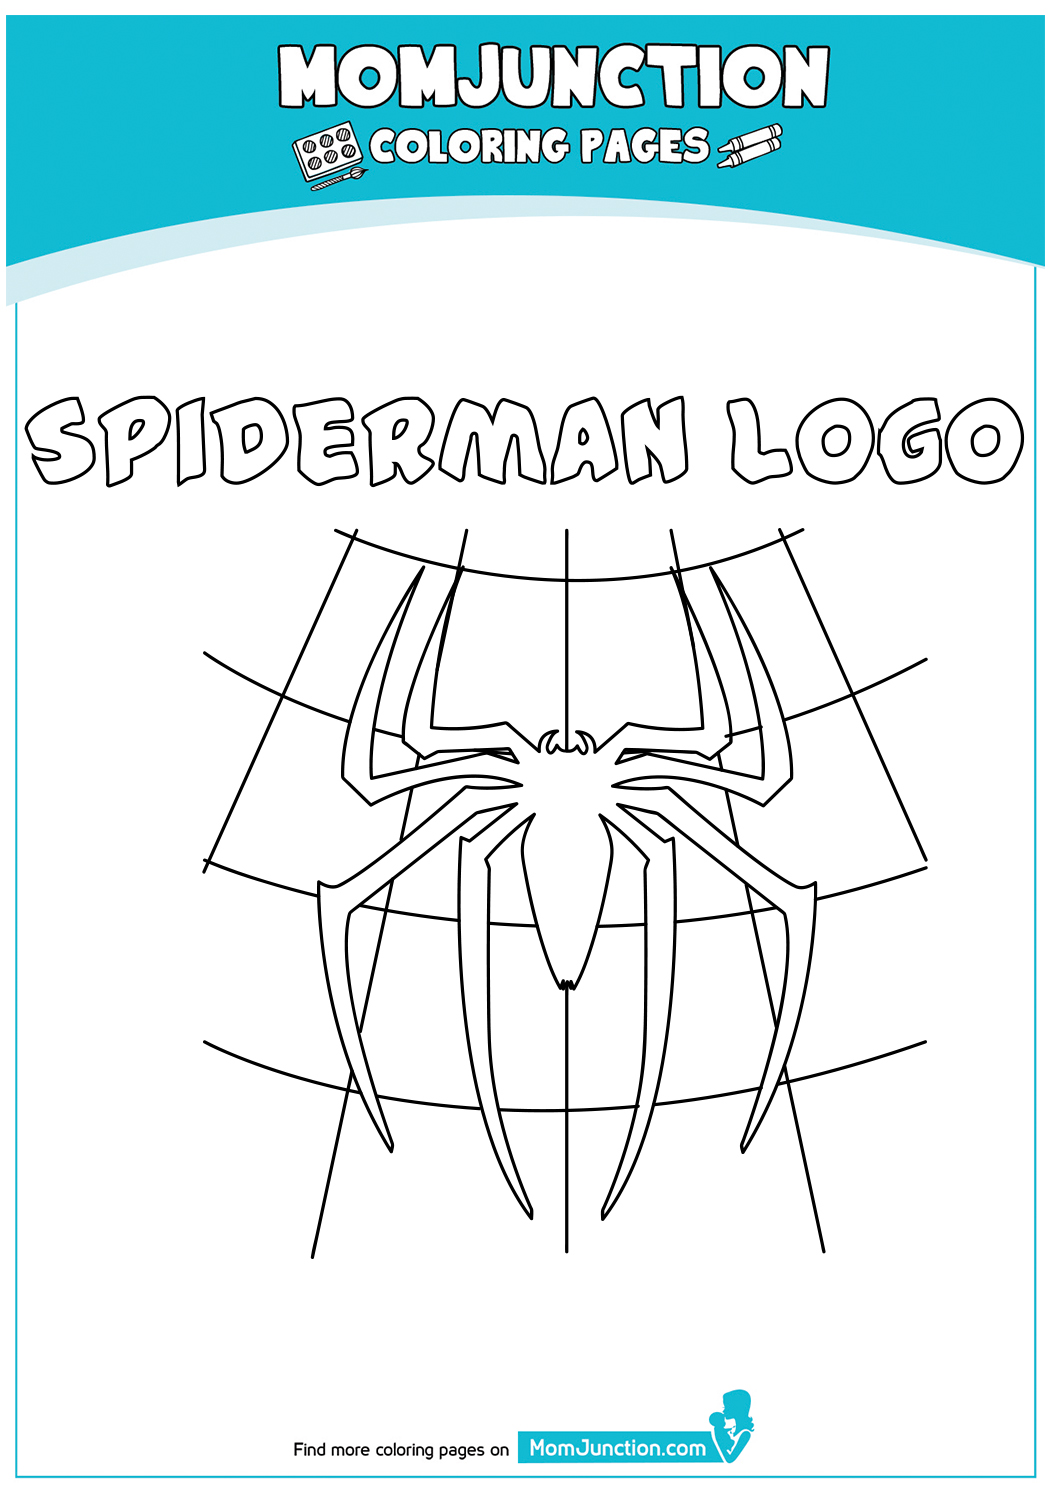 Spiderman-Logo